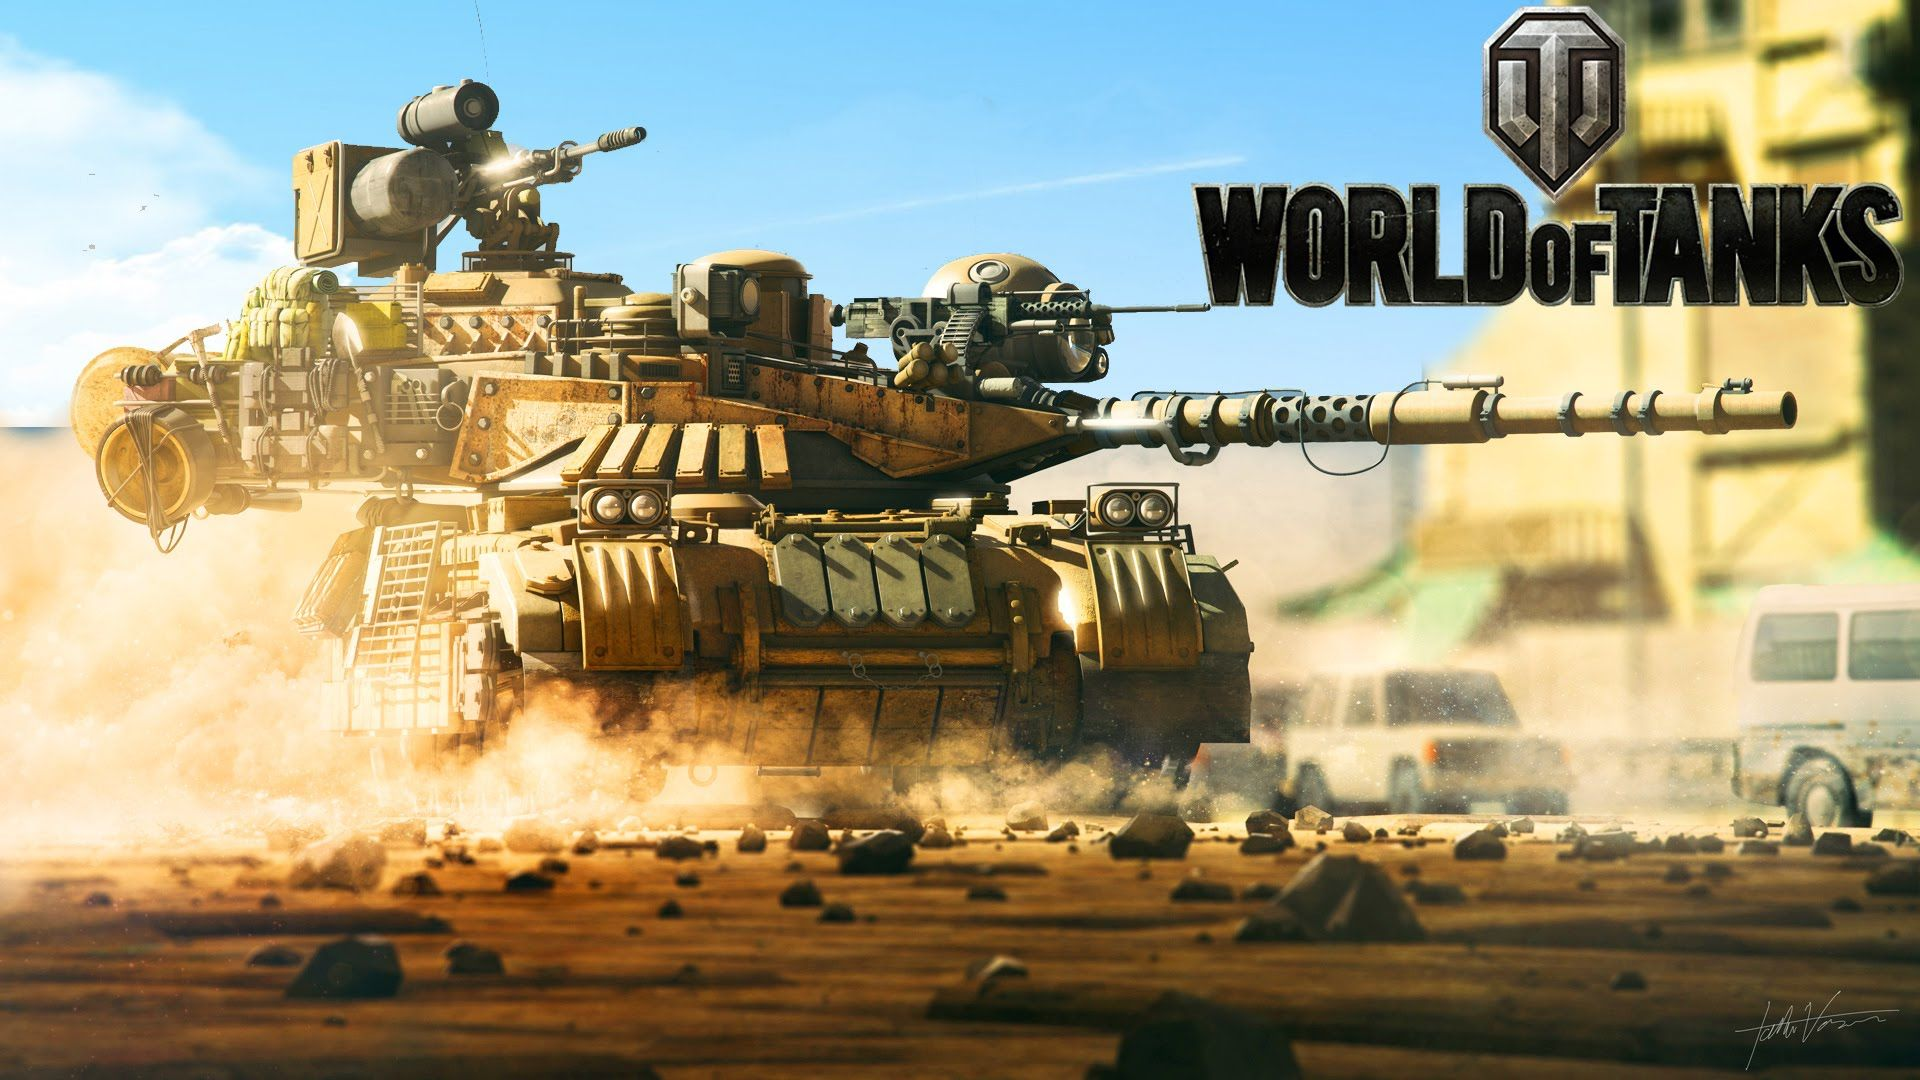 World Of Tanks - ALL TANKS UNLOCKED Epic Gameplay! + Give